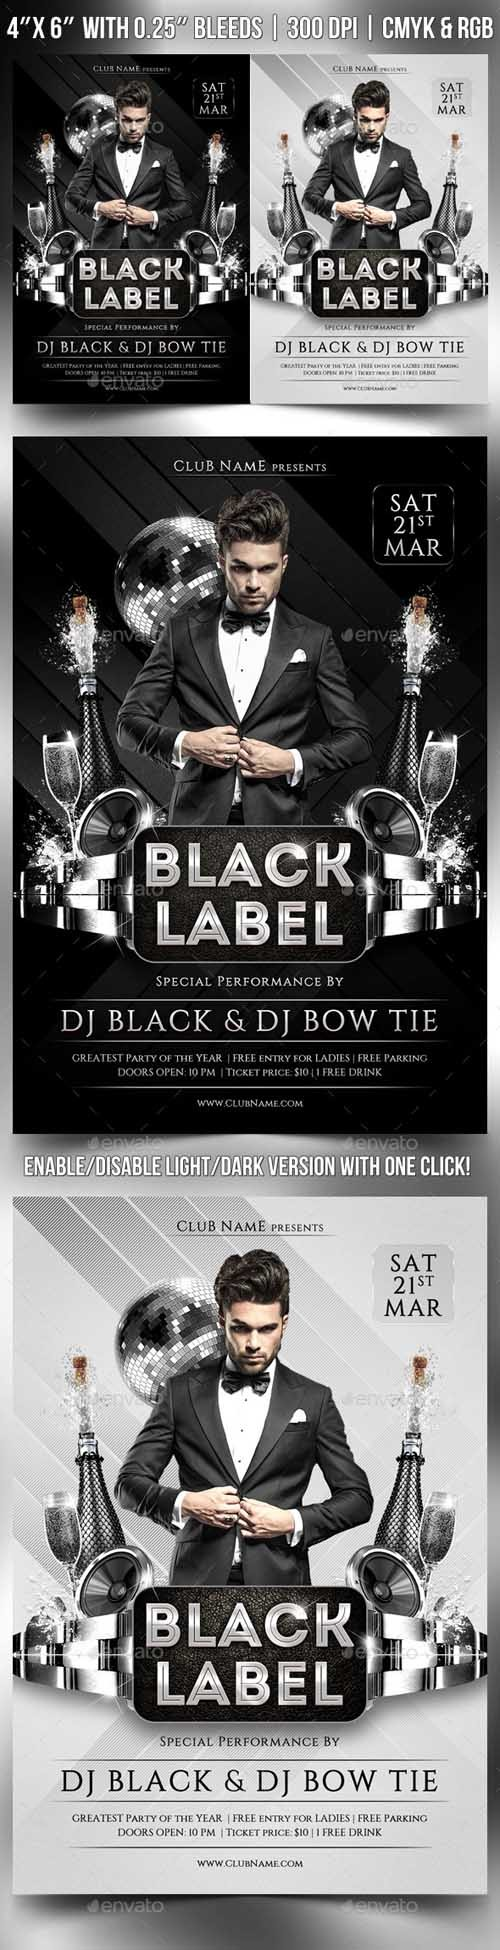 Flyer Template PSD - Black Label